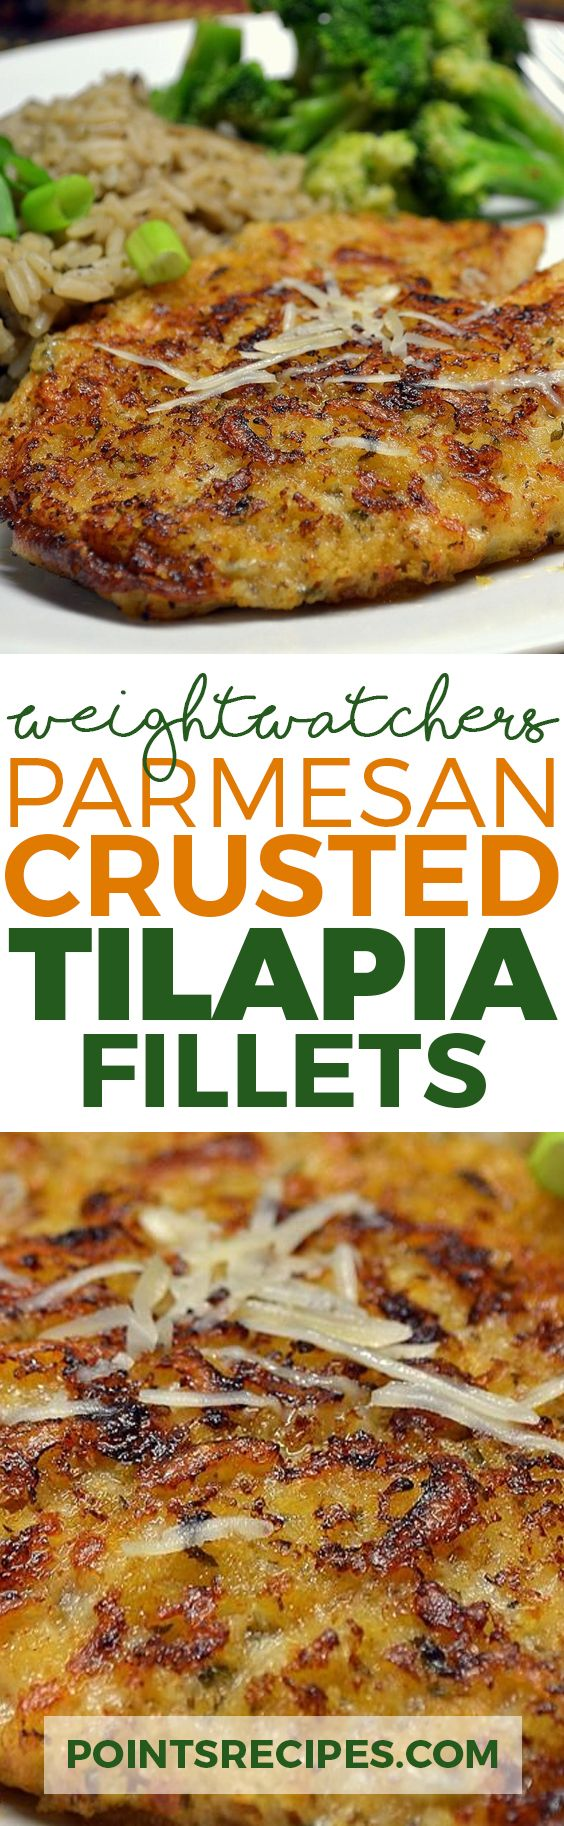 PARMESAN CRUSTED TILAPIA FILLETS WITH WEIGHT WATCHERS SMARTPOINTS